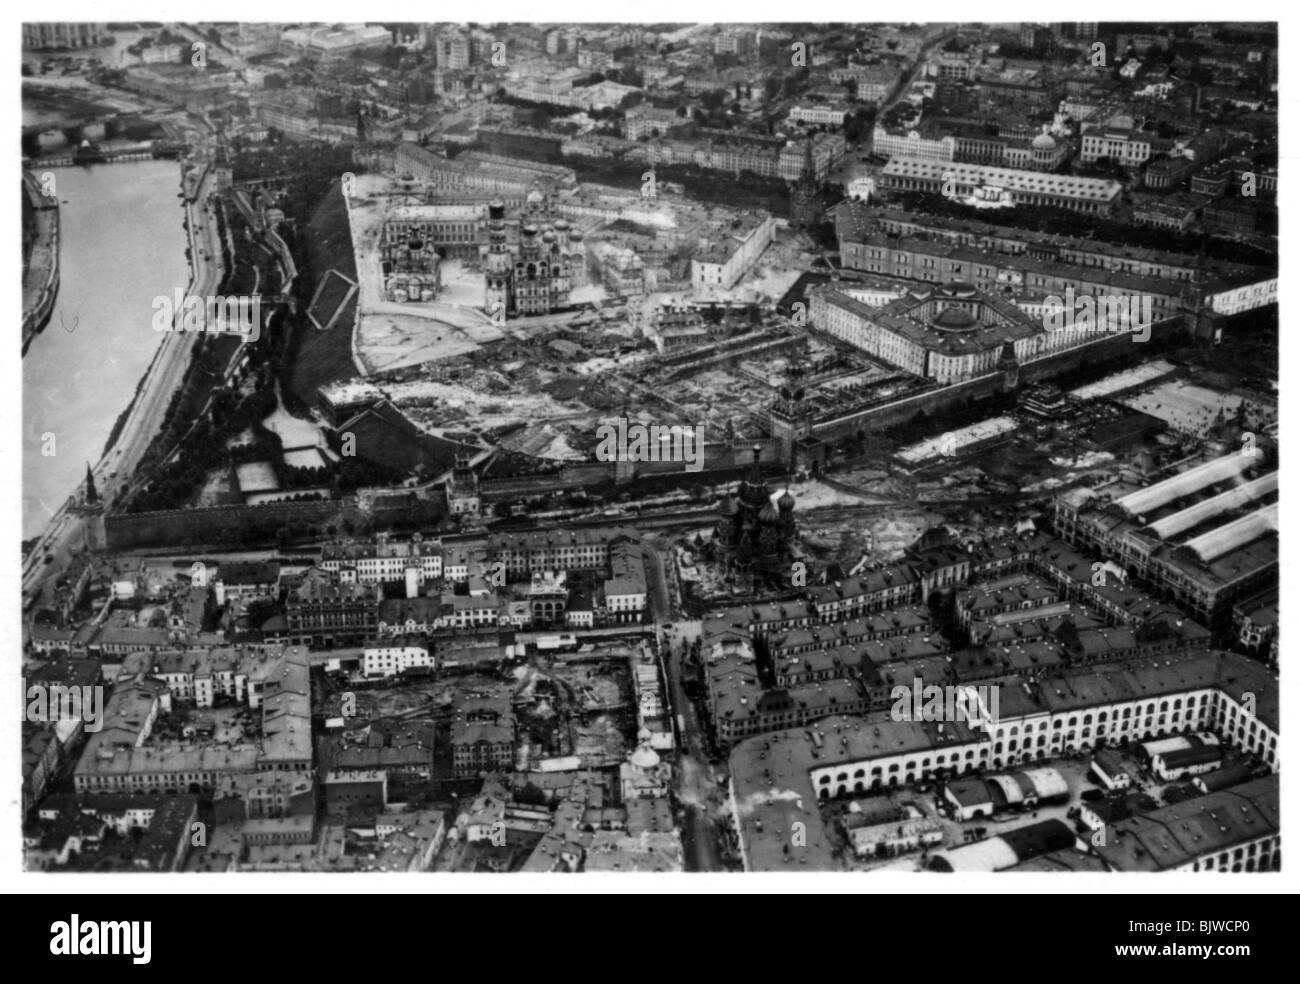 Aerial view of the Kremlin, Moscow, USSR, from a Zeppelin, 1930 (1933). - Stock Image